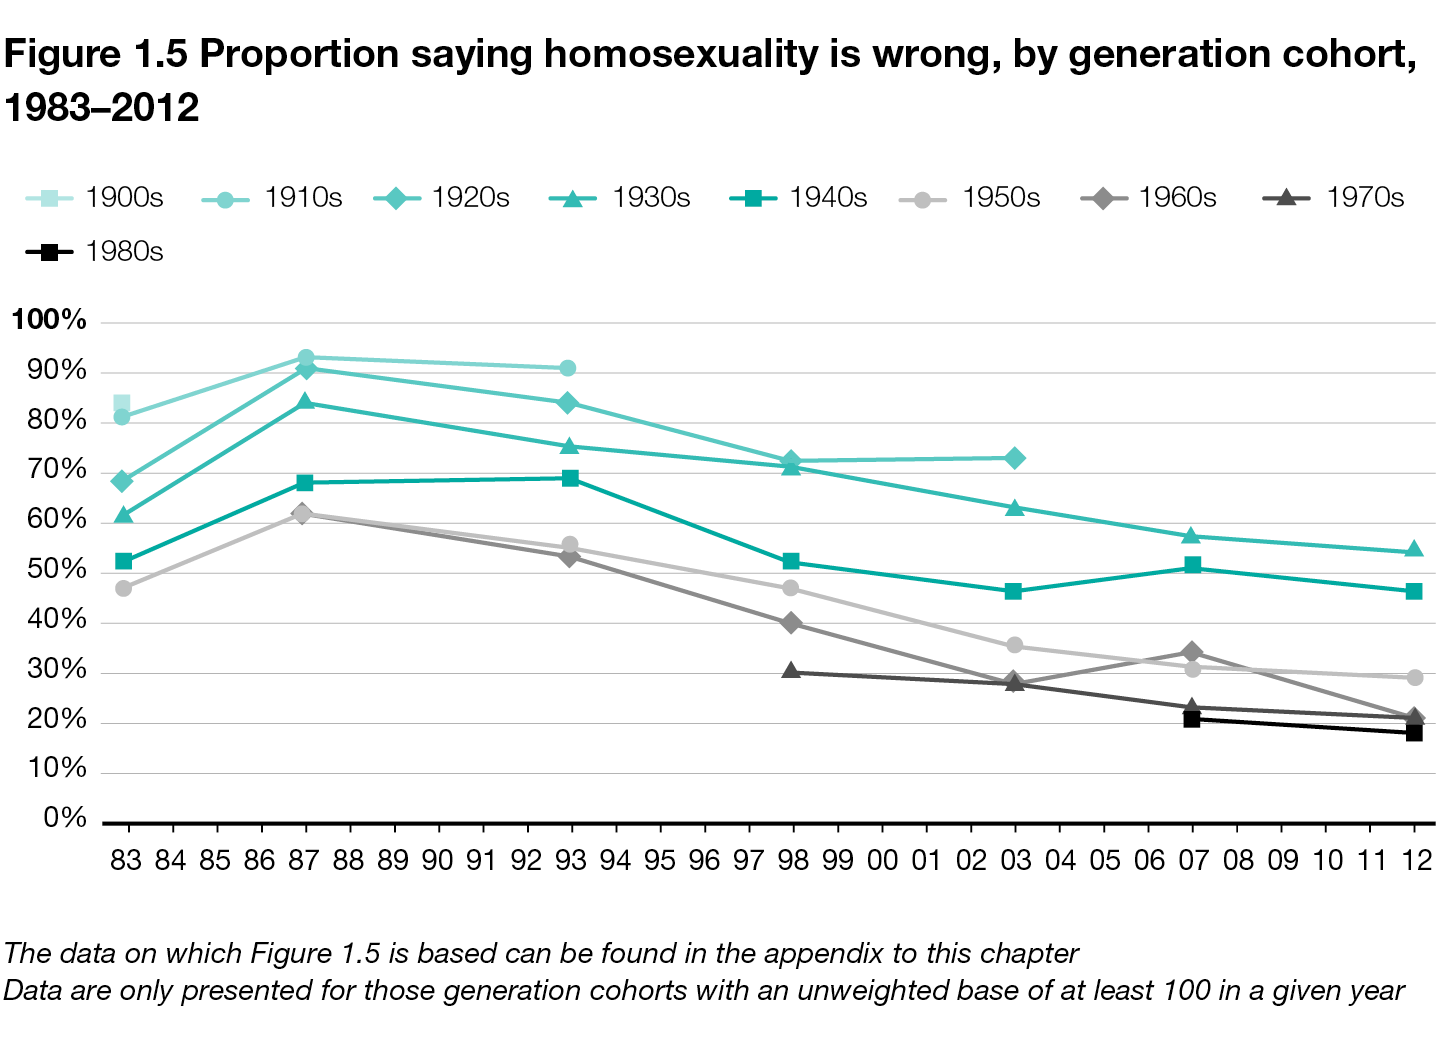 Personal views on homosexuality